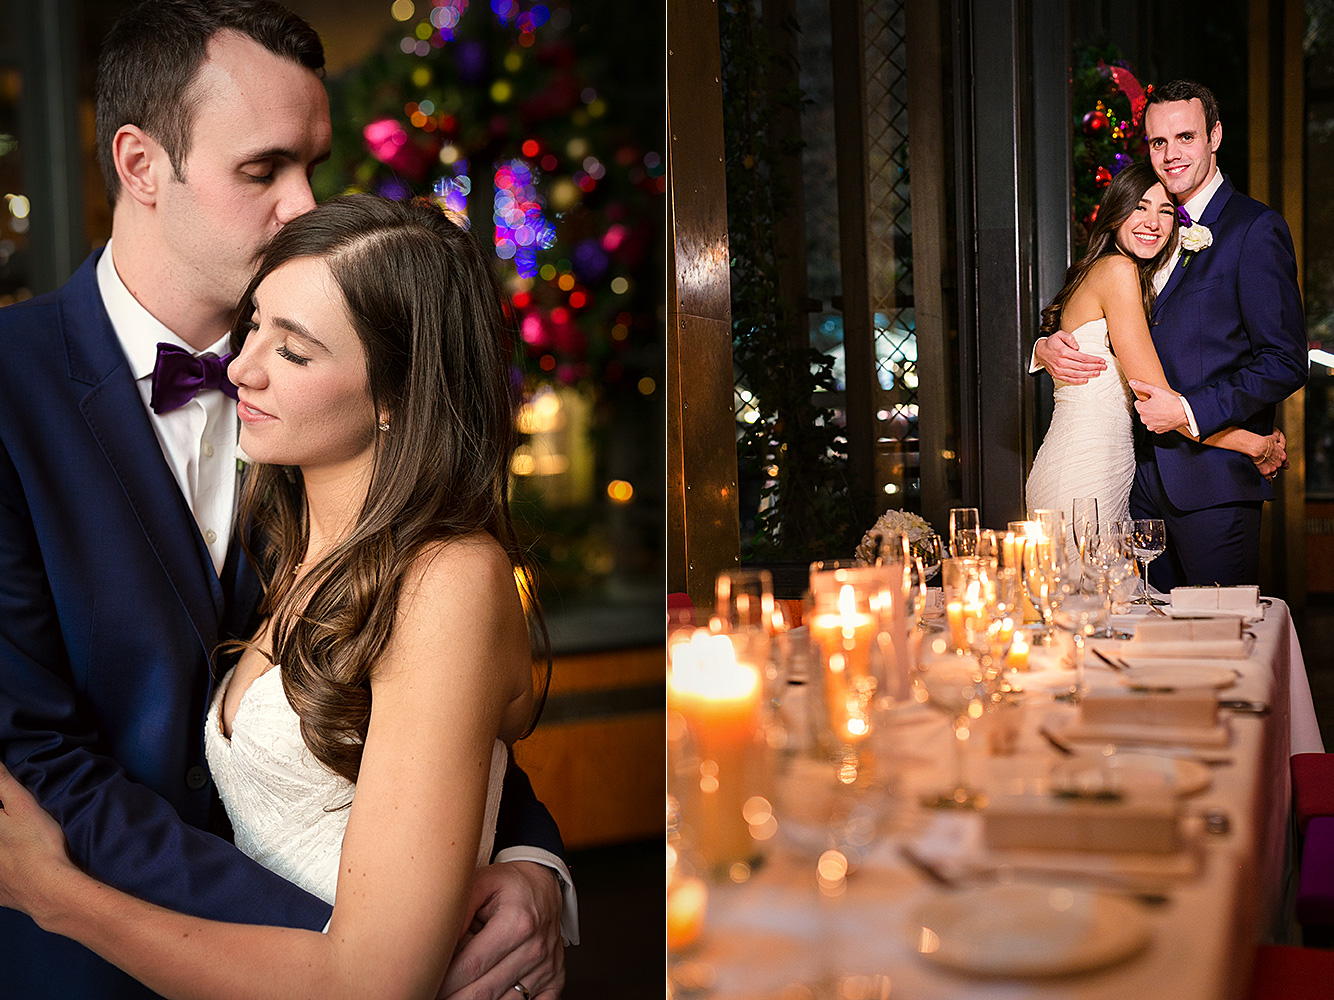 NYC_Wedding_Photographer_DaAd_Wed_Blog_29.jpg